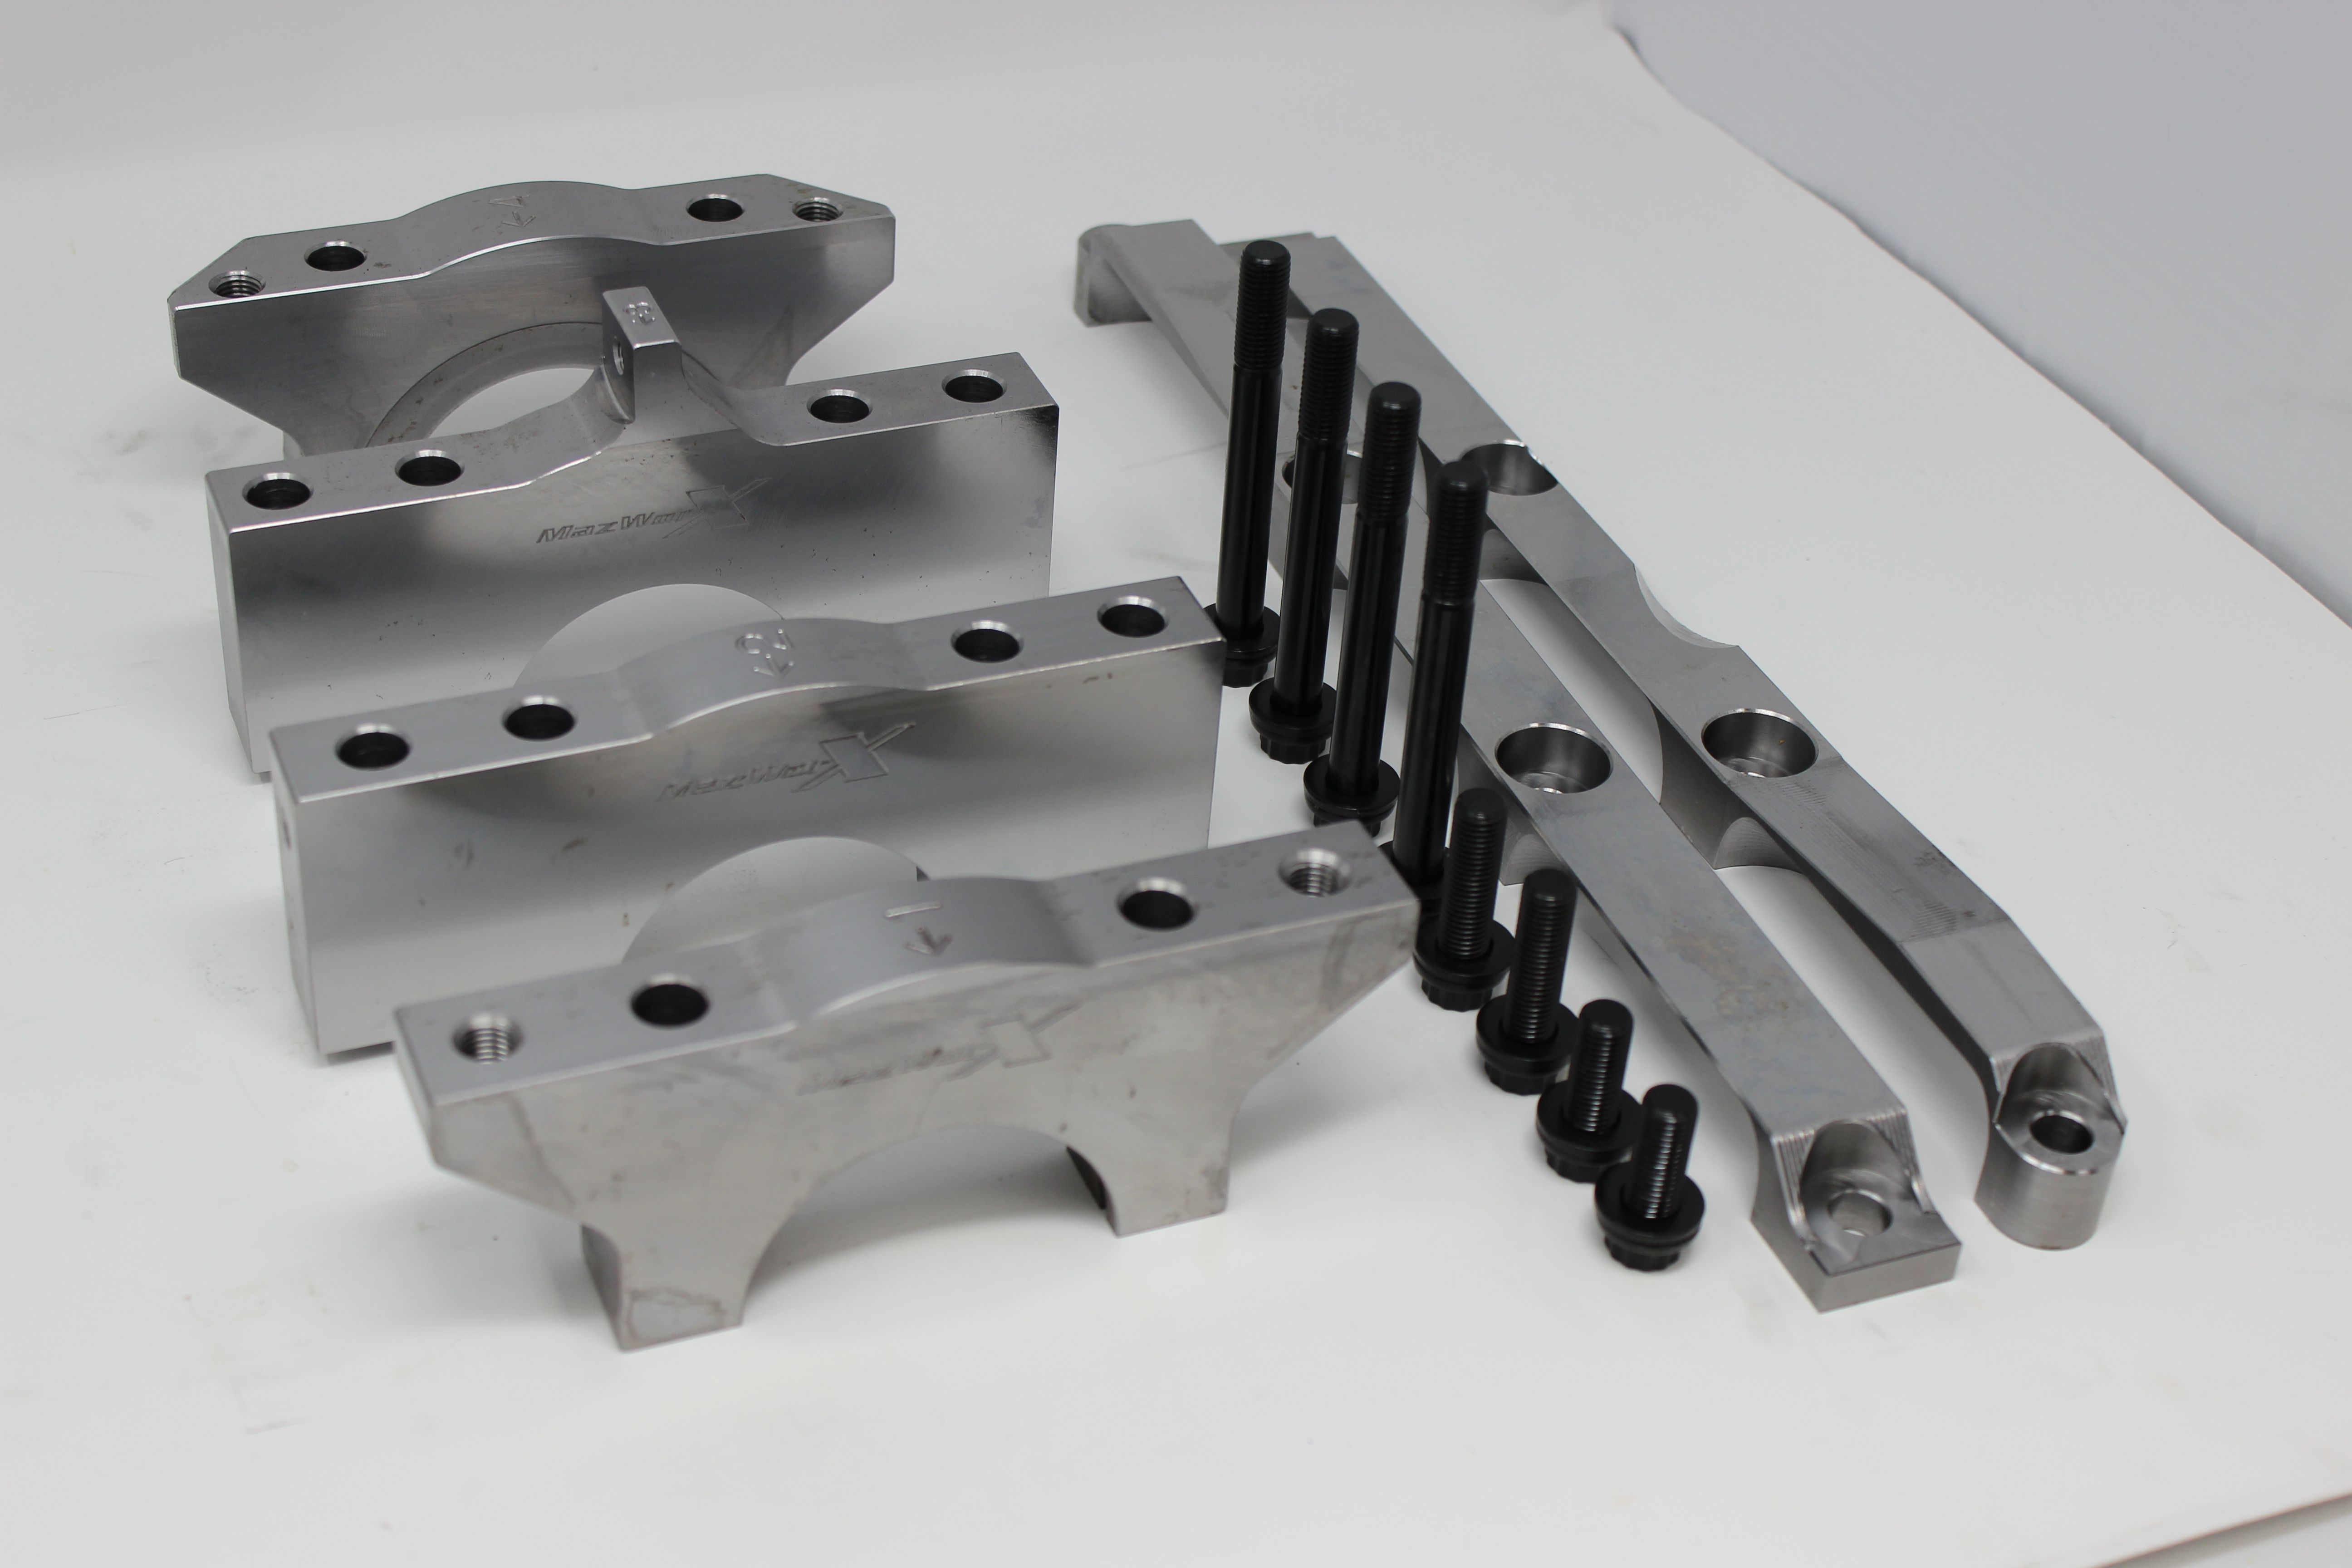 Mazworx 4 Bolt Billet Main Caps W/ Girdle - Nissan 300ZX VG30DETT